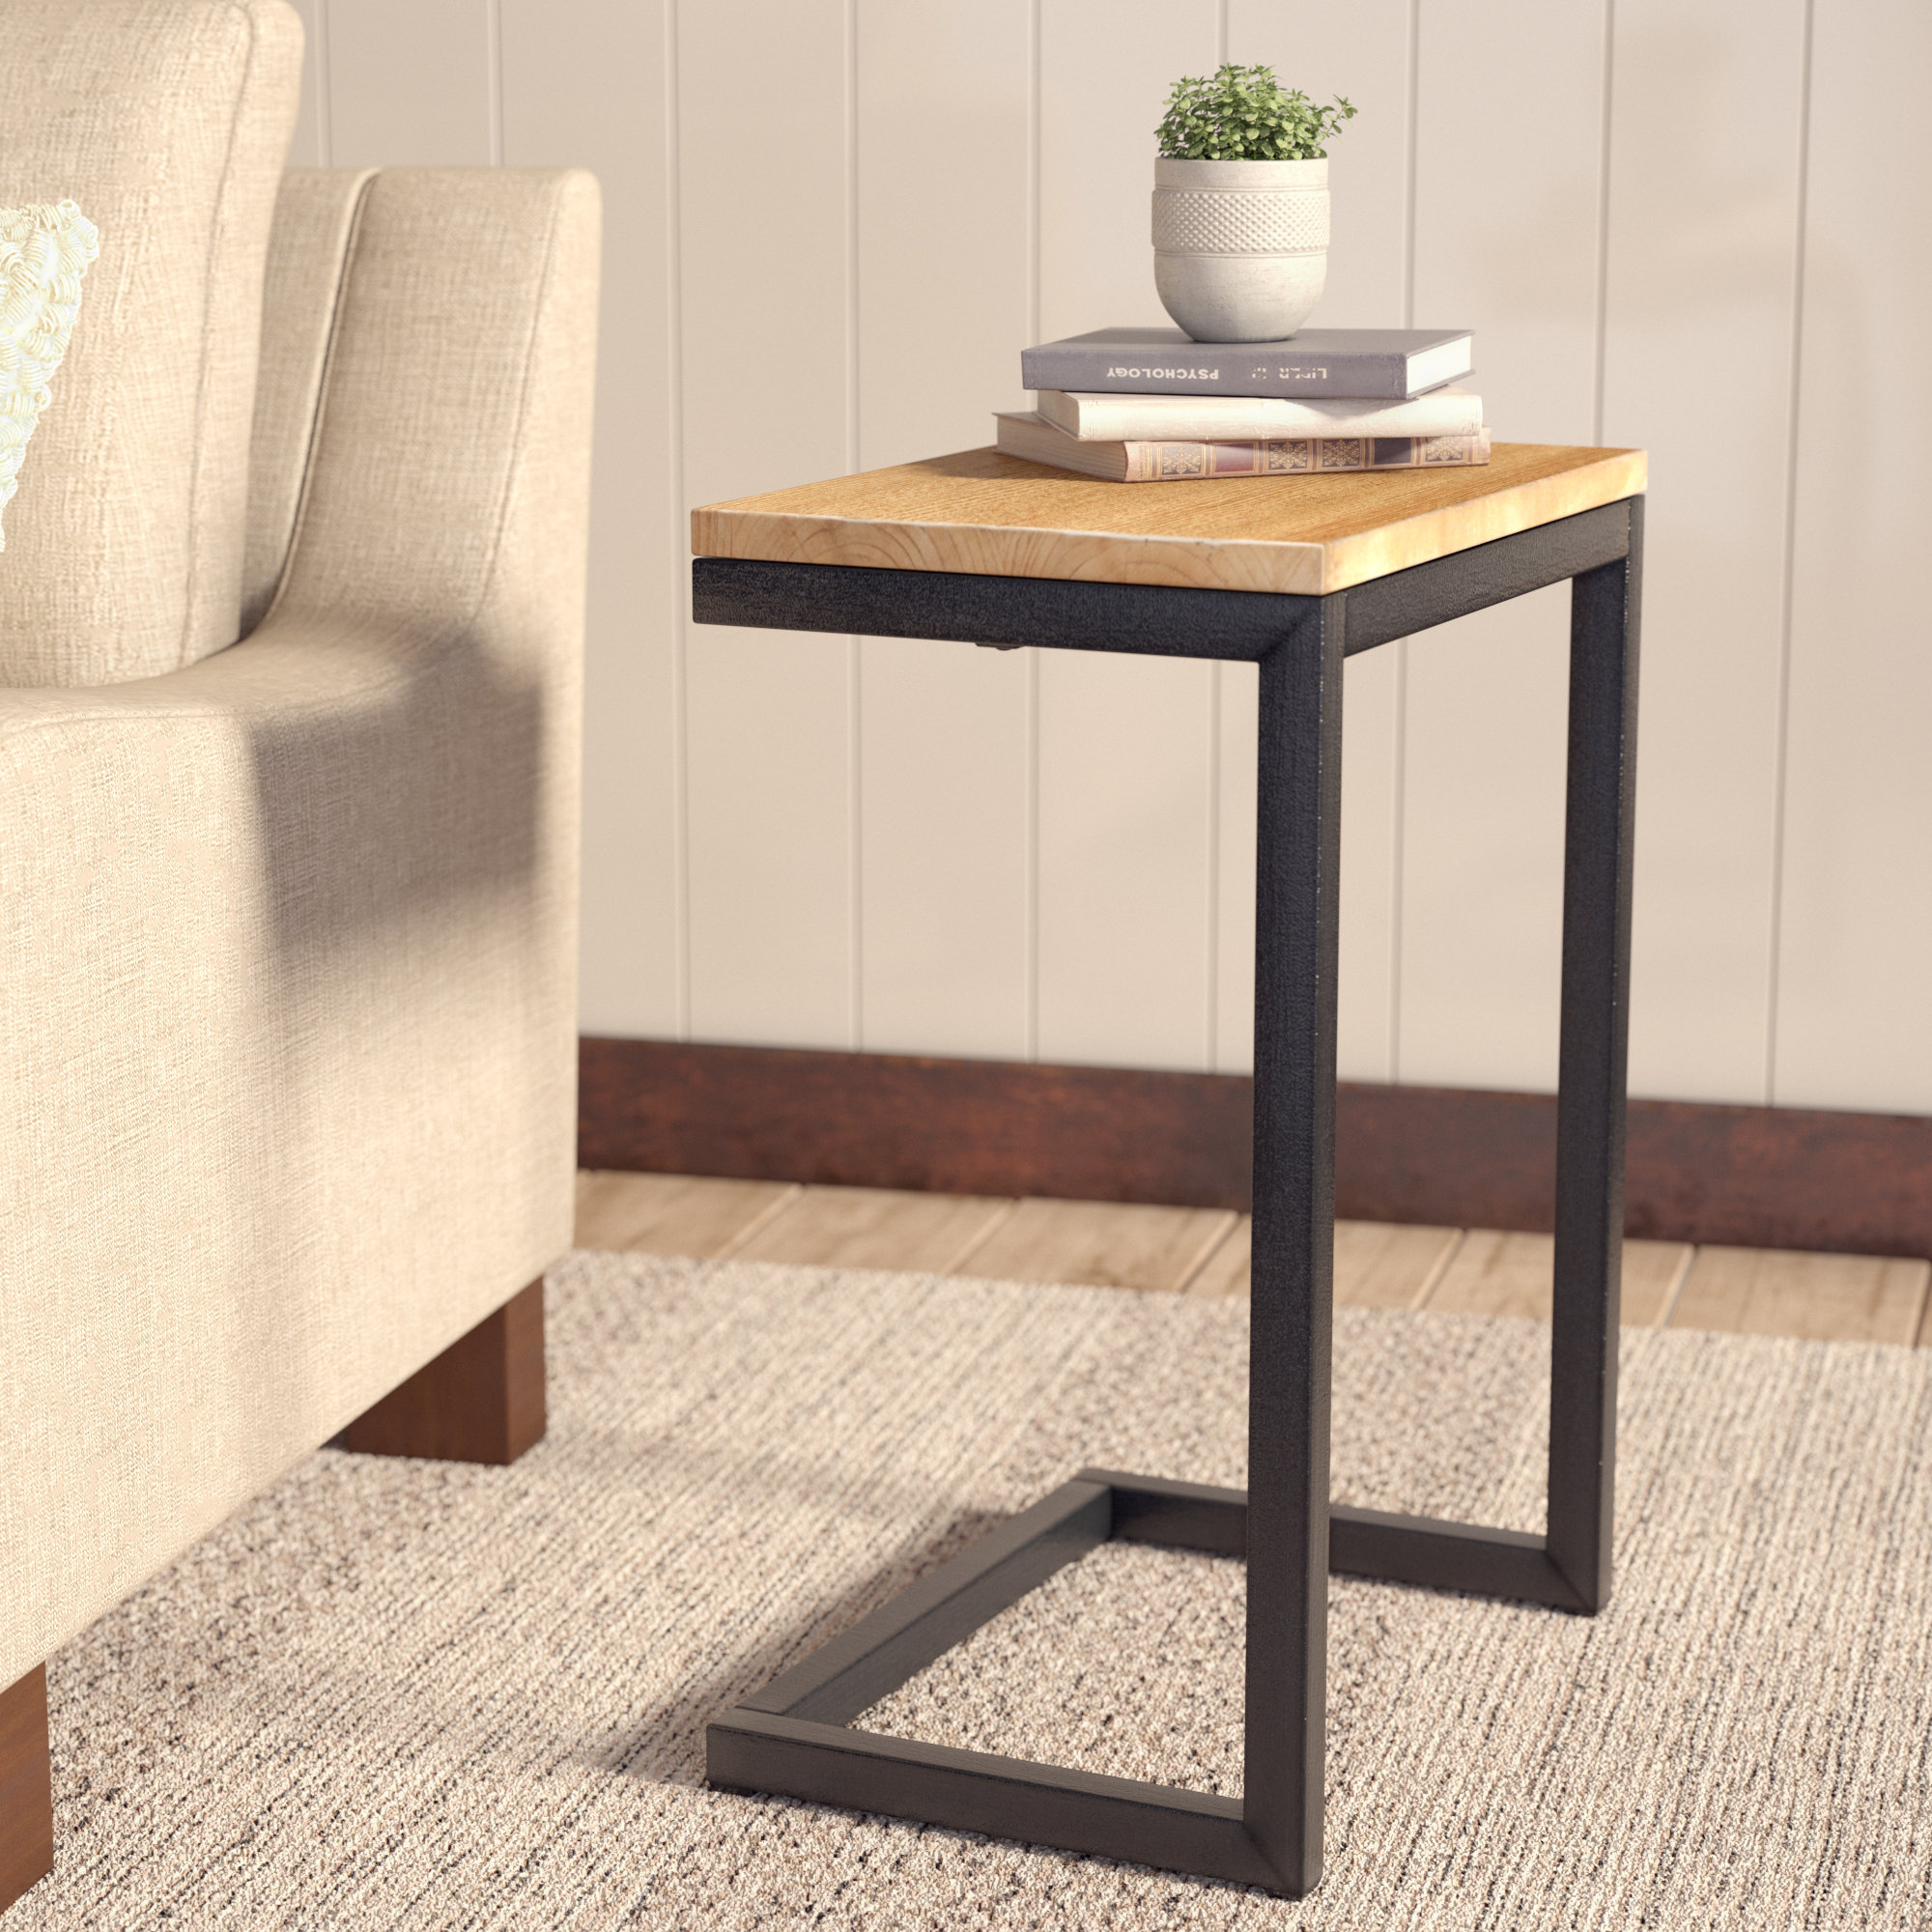 laurel foundry modern farmhouse nayara antique end table reviews blue accent dining room height round patio tablecloths umbrella white hairpin legs extendable uma side elm metal